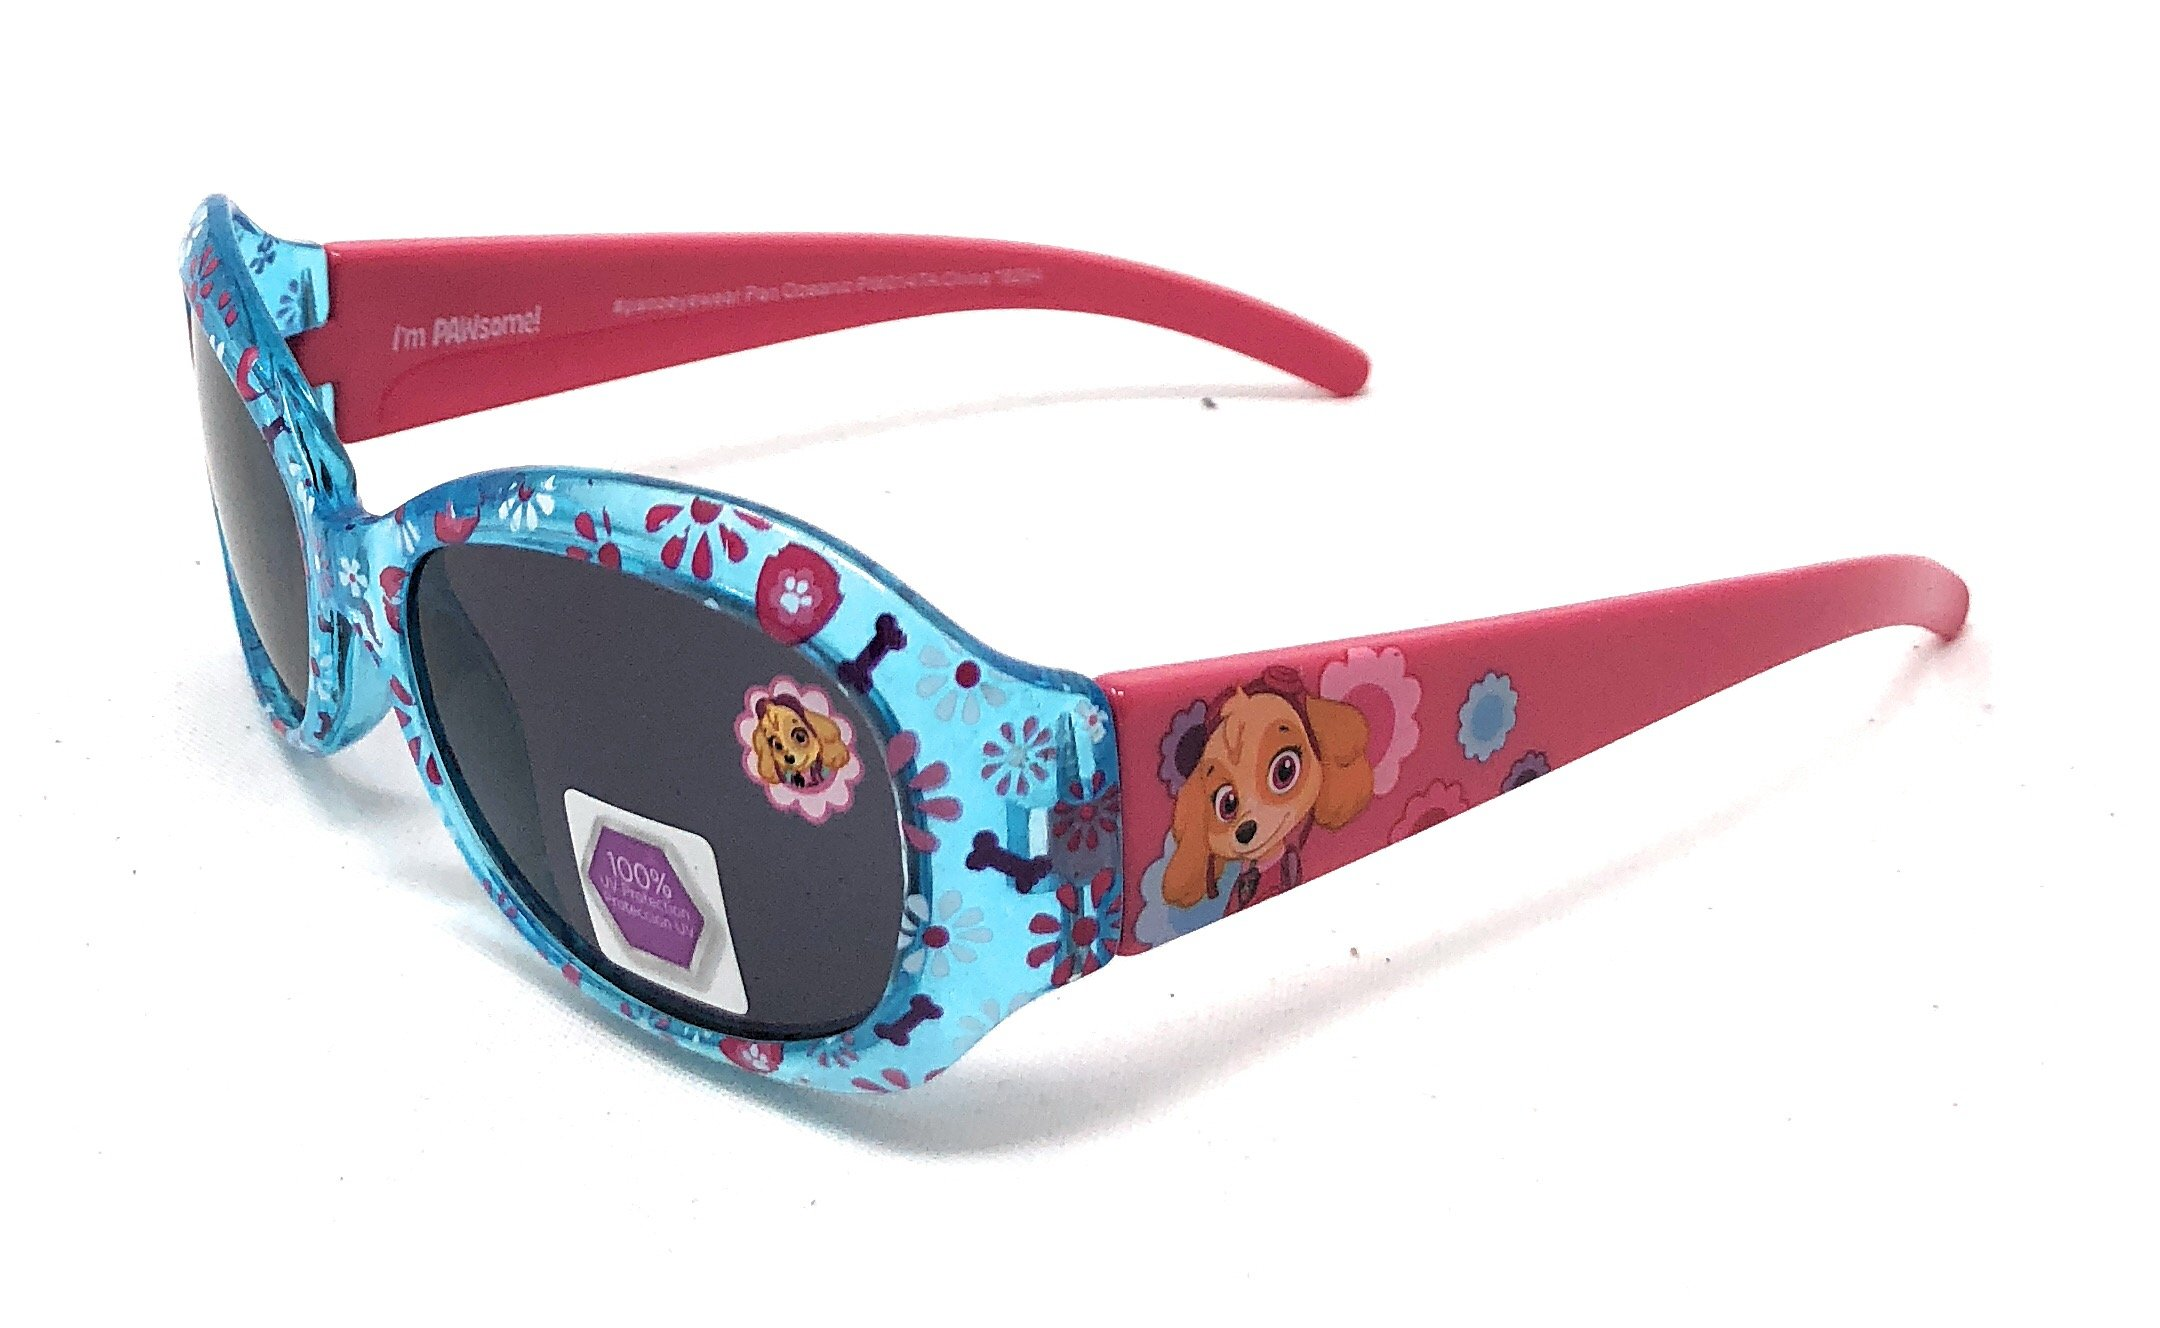 Nickelodeon Paw Patrol Skye Girl's Sunglasses in Turquoise and Pink - Clear Blue Design with Flowers